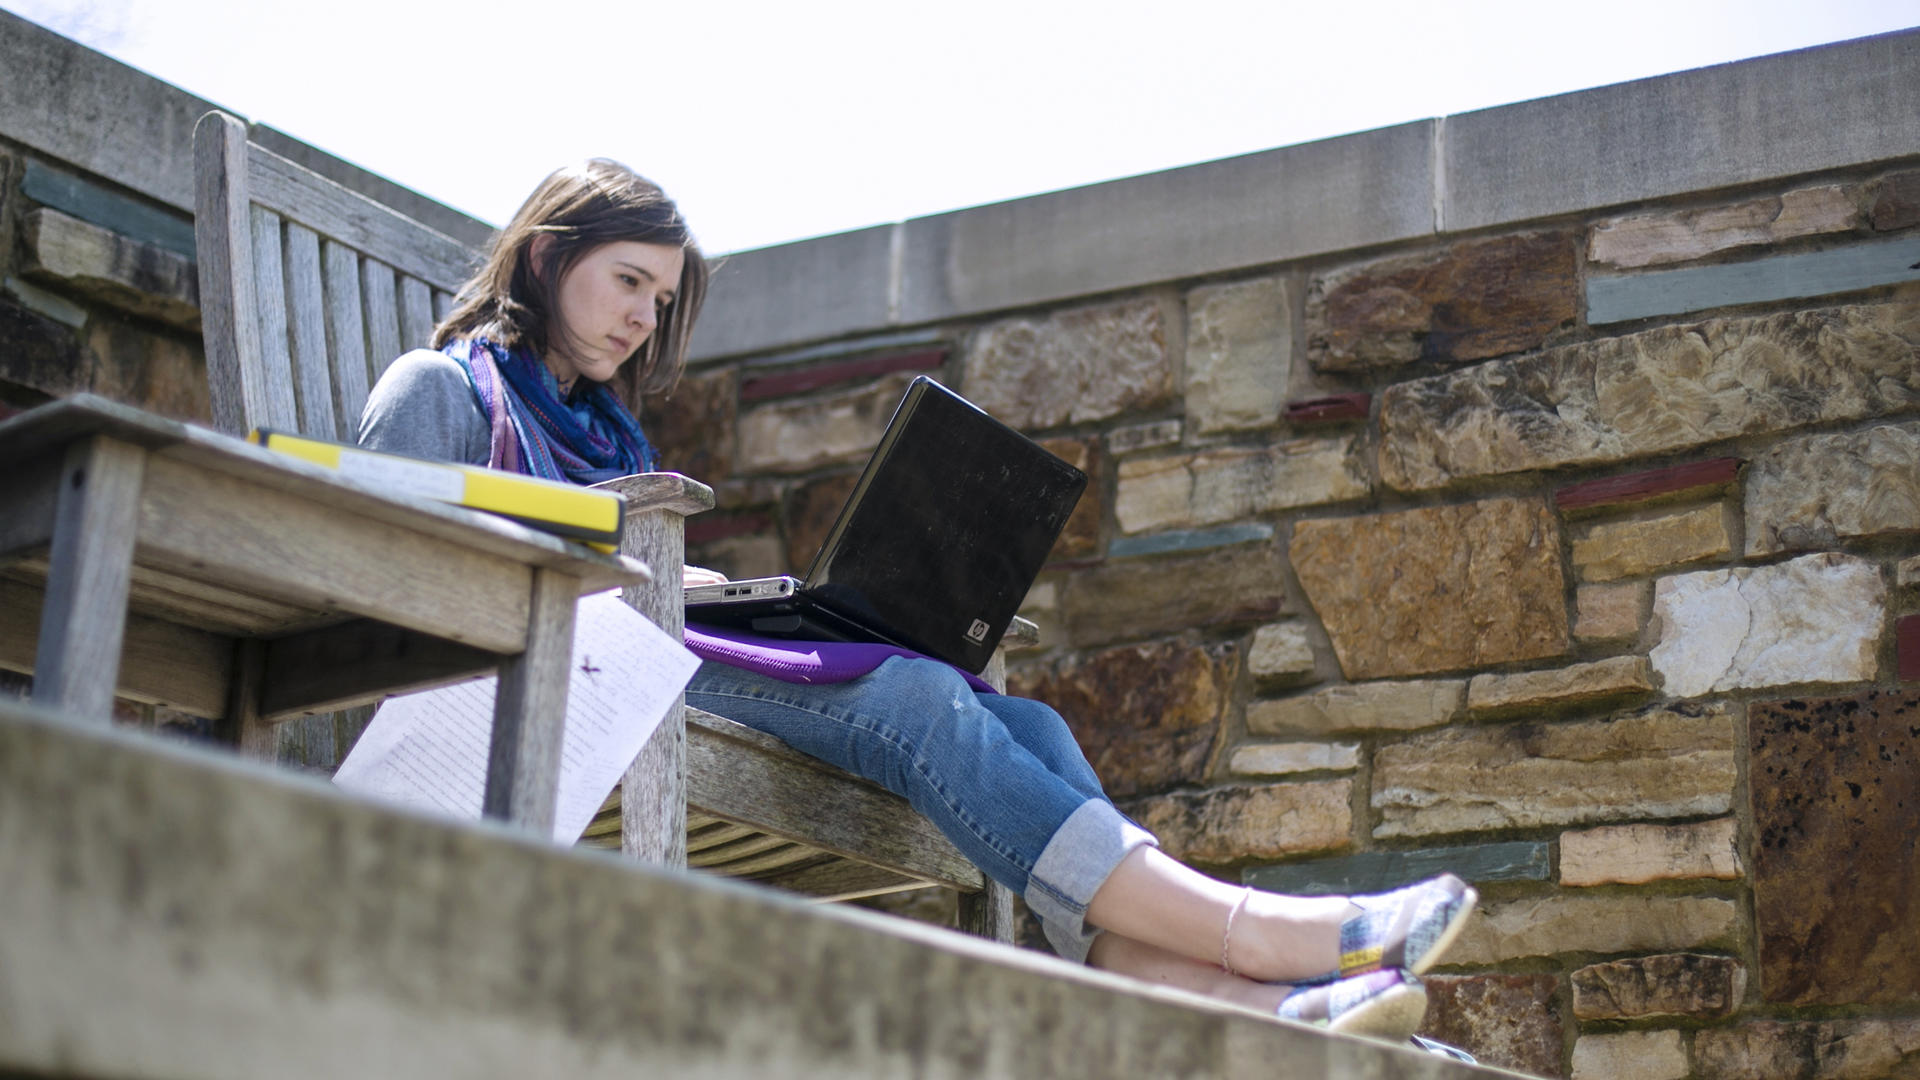 A student sitting on a bench with a laptop